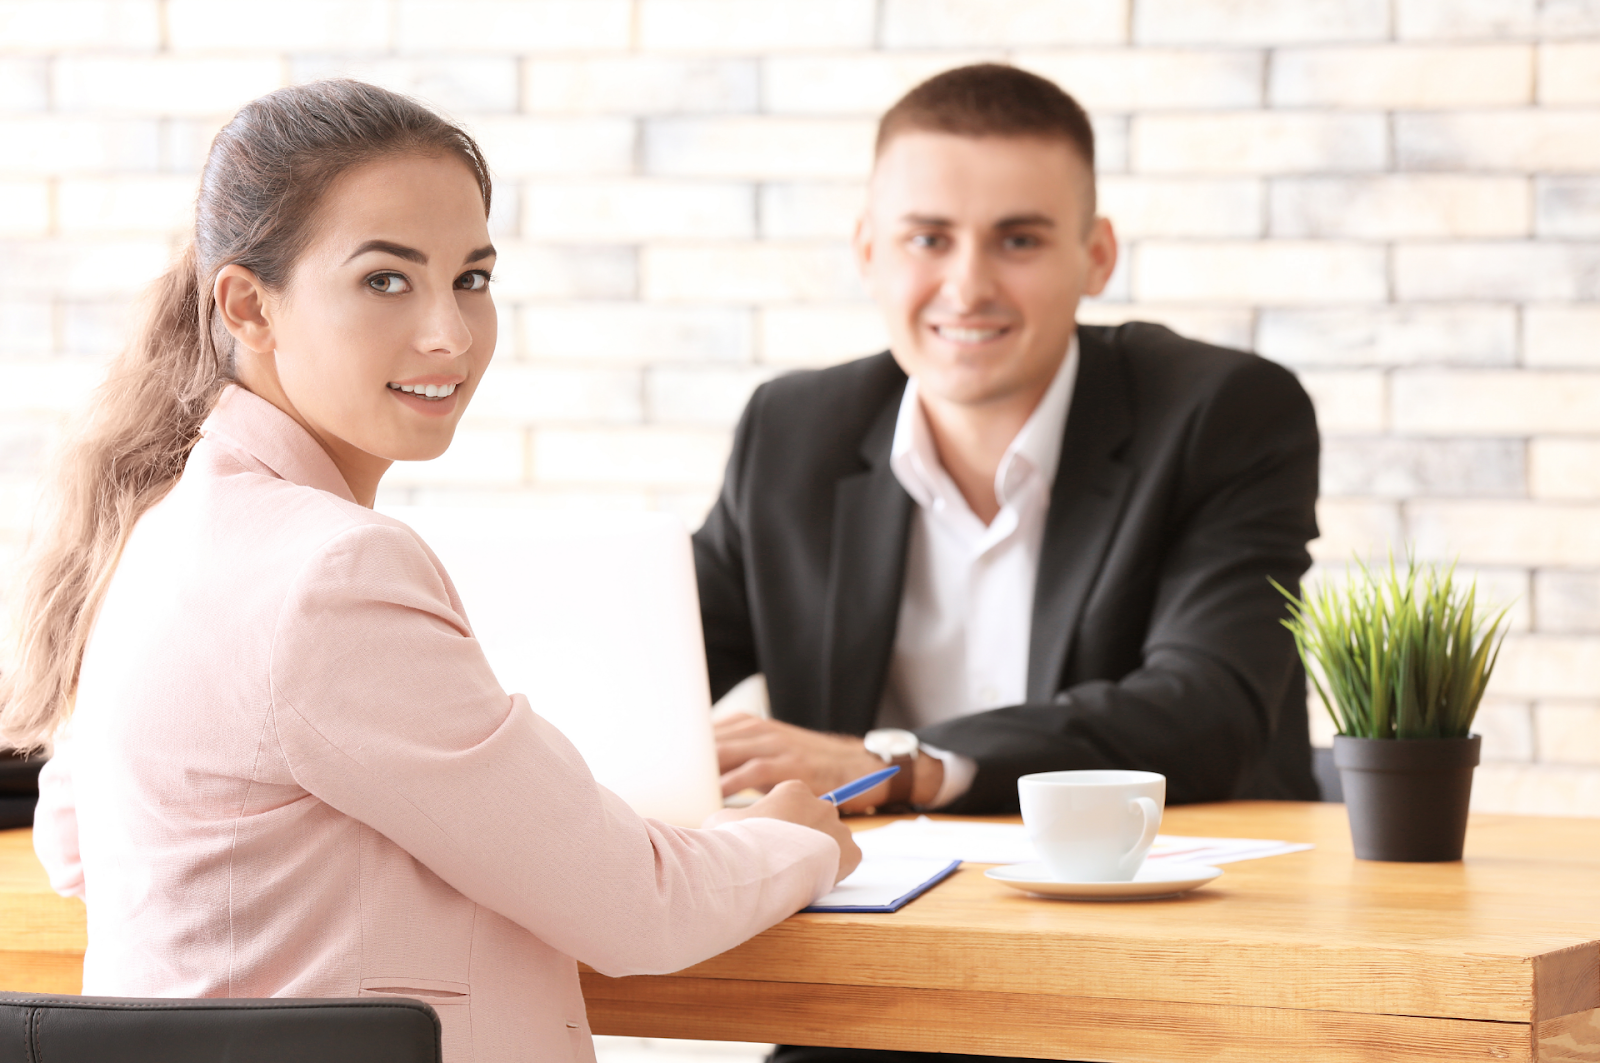 Human Resources Manager Interviewing Woman at Table